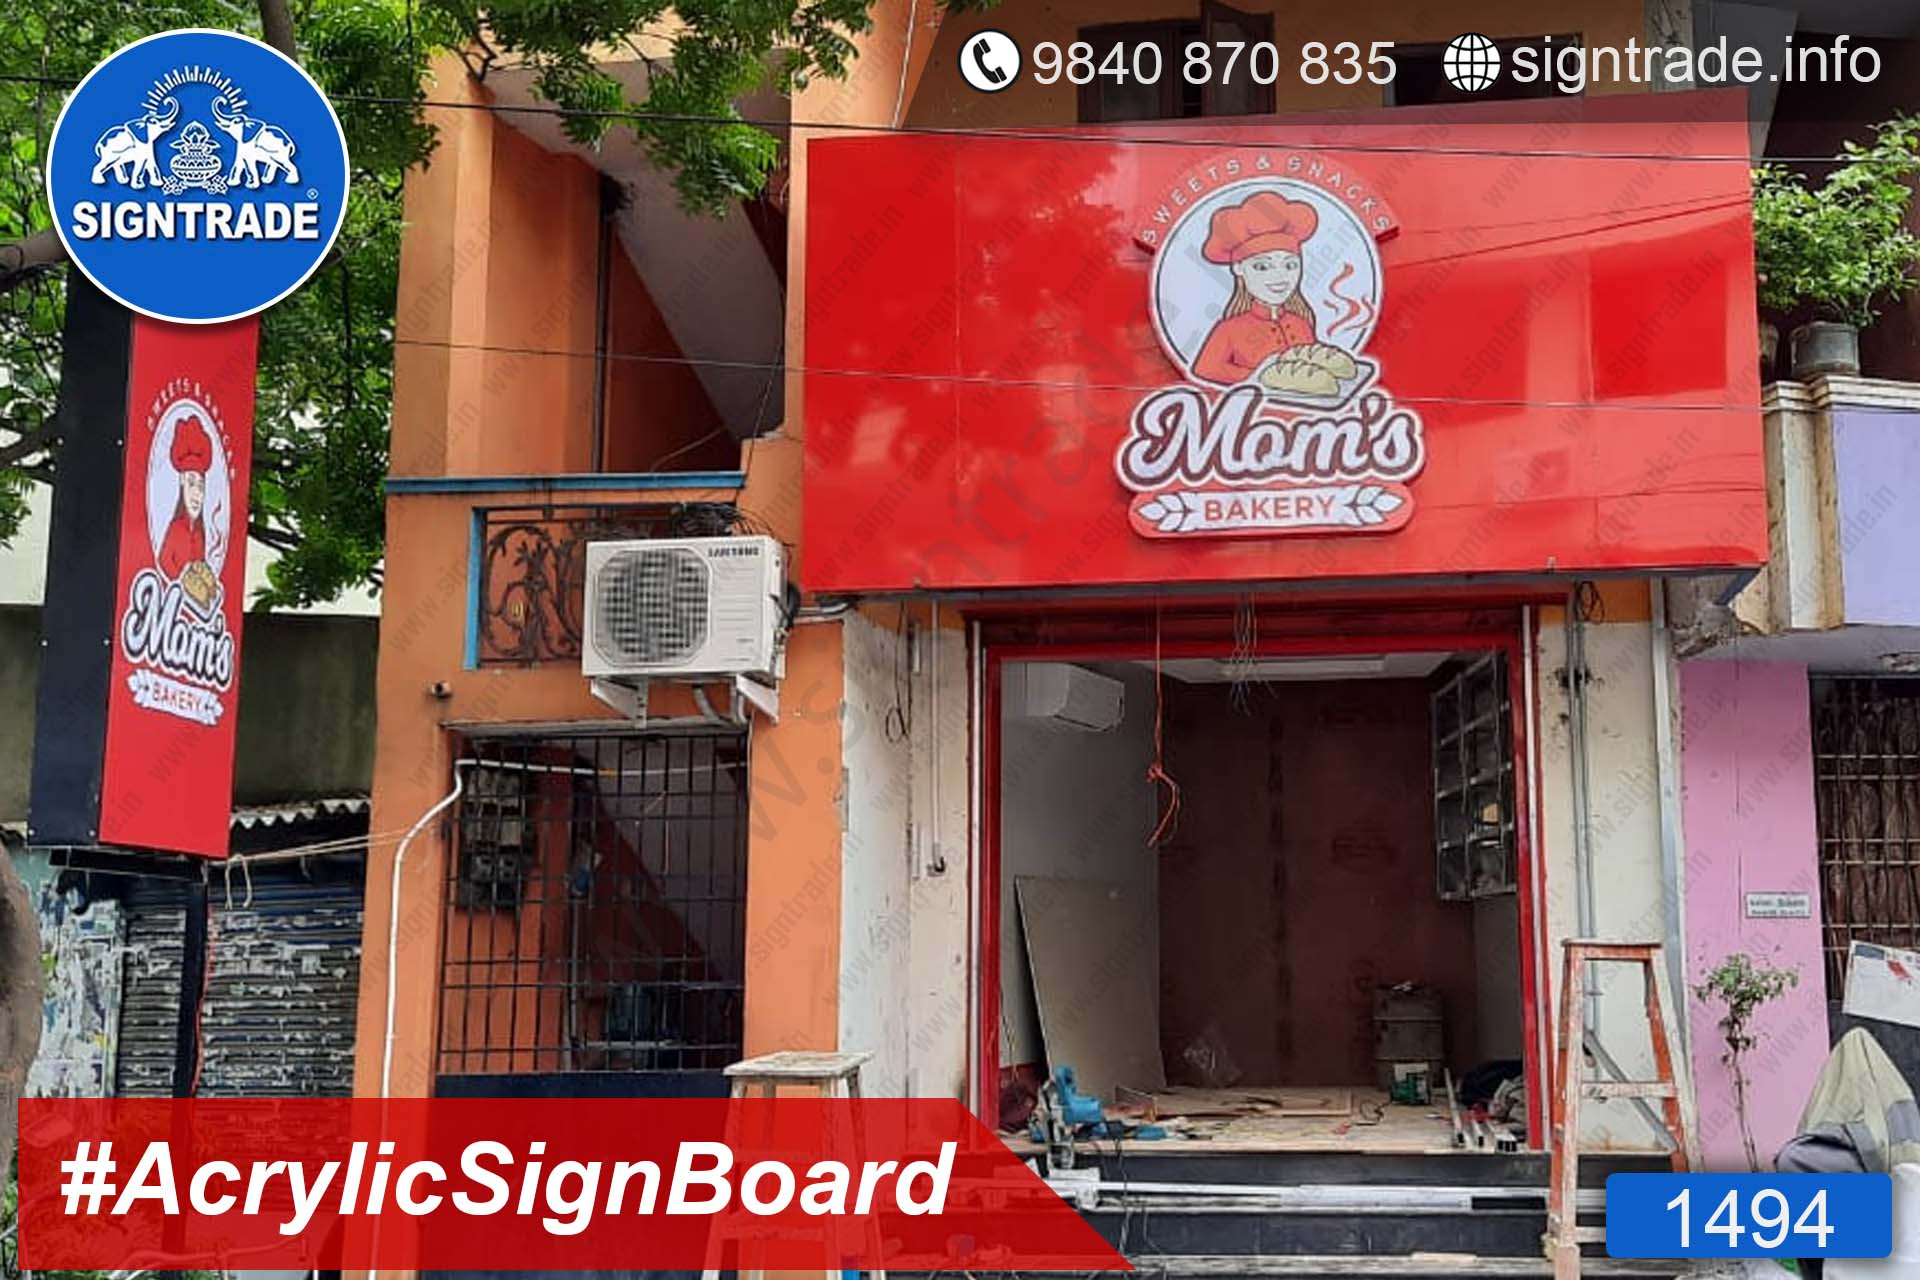 1494, Mom's Bakery, Chennai - SIGNTRADE - Acrylic ACP, LED Sign Board Manufacturers in Chennai